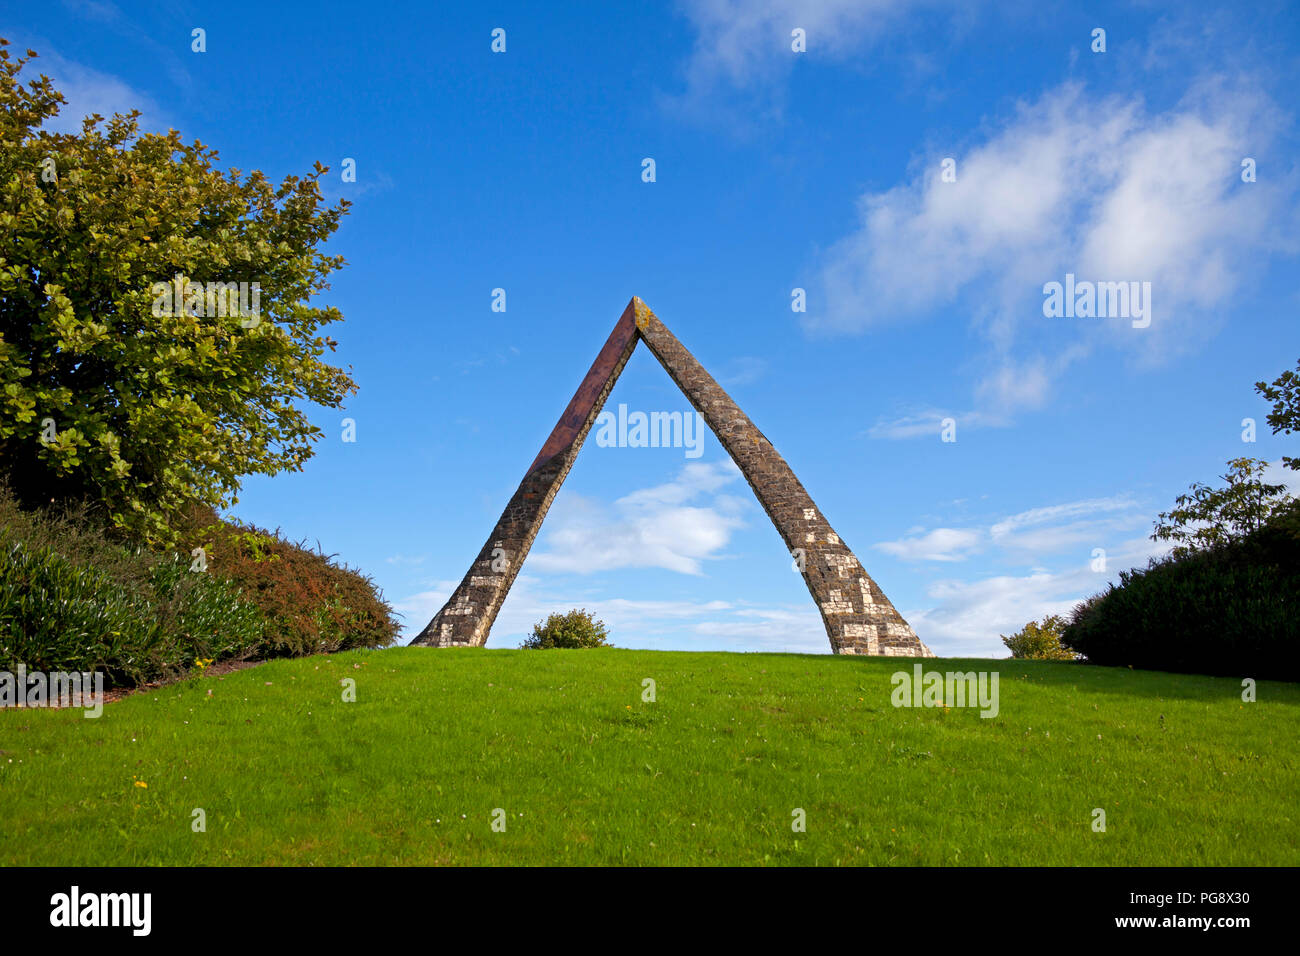 Deer Park, Livingston East Roundabout.Situated on the main roundabout as you turn off the M8 'Norgate' symbolically announces to visitors the entrance - Stock Image